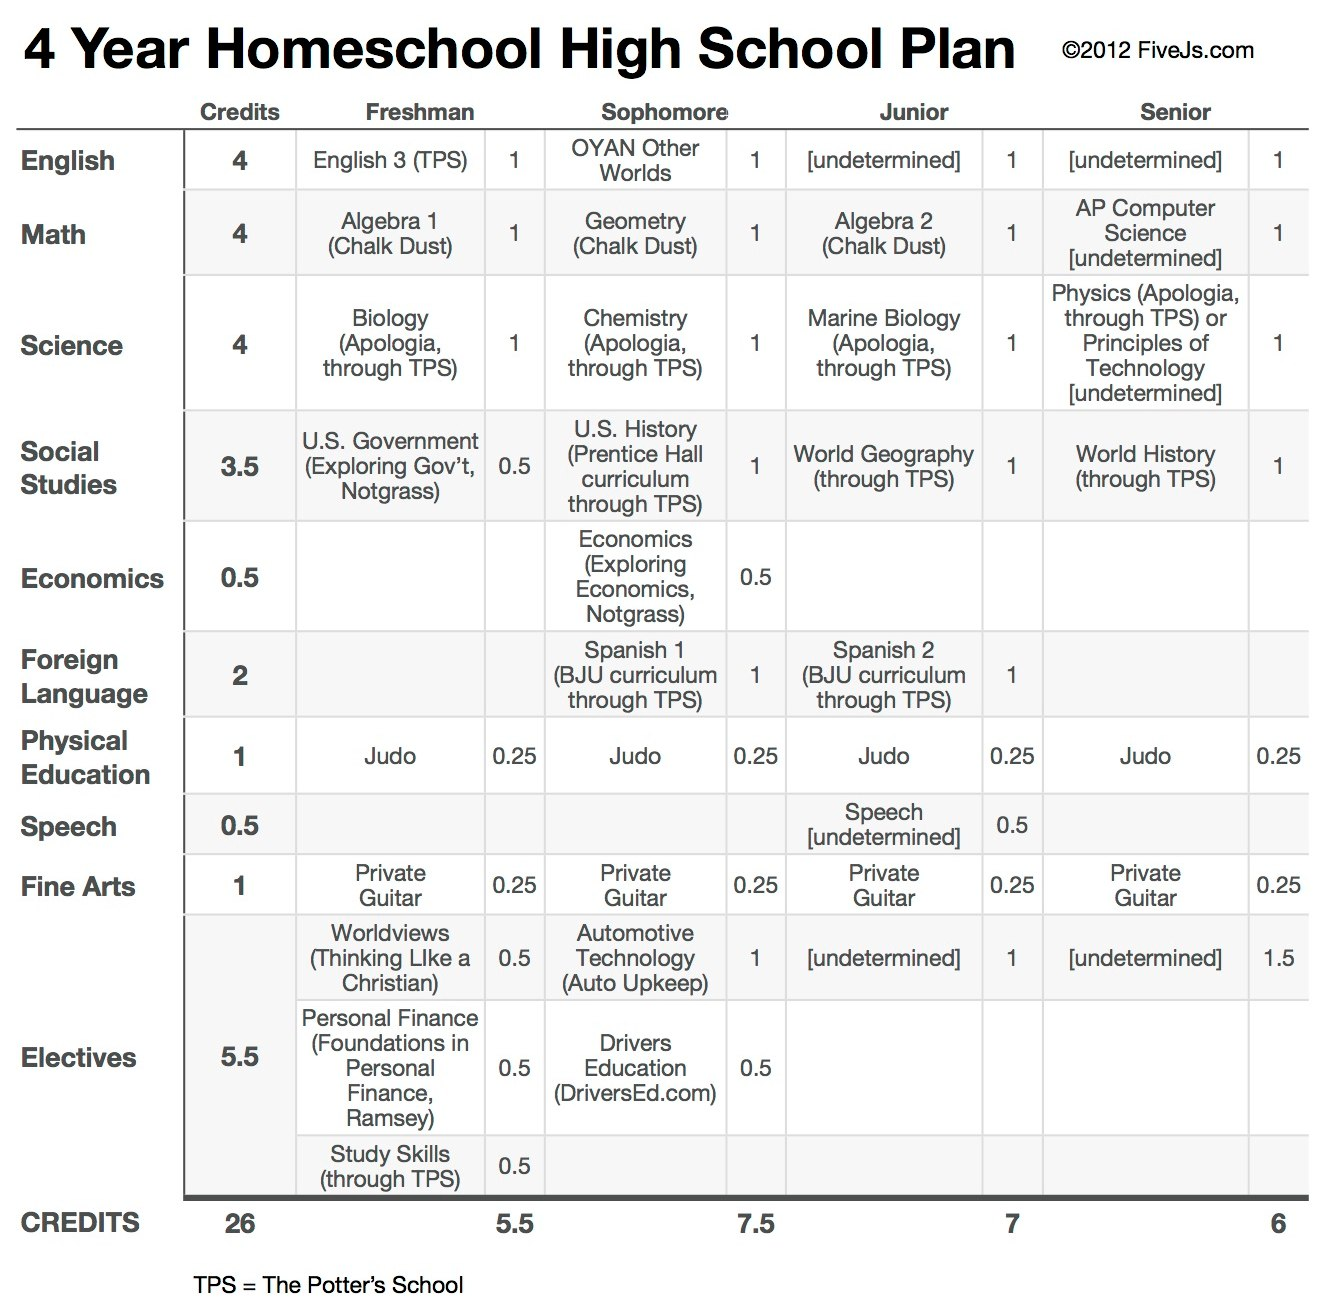 4 year homeschool high school plan